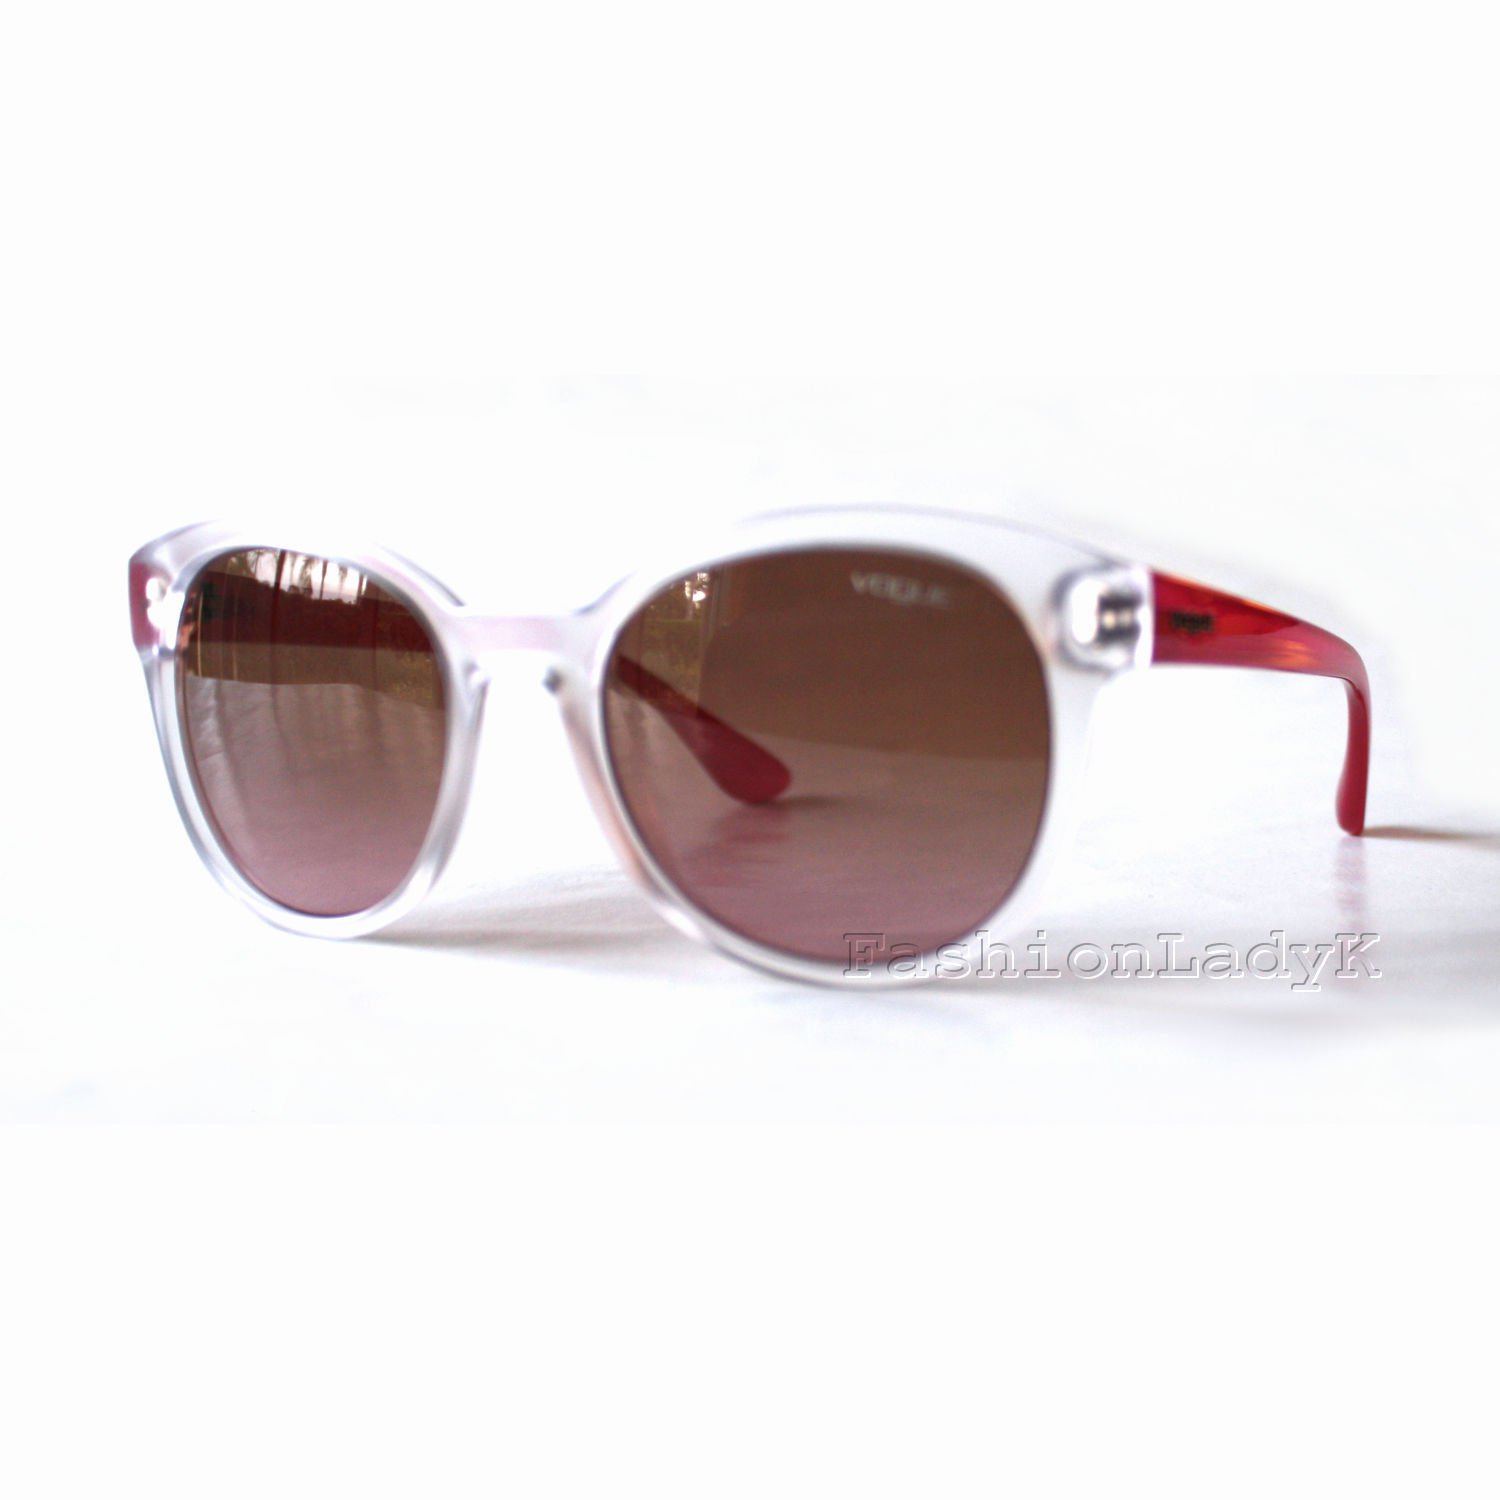 New Authentic VOGUE Women's Pink Red Transparent Sunglasses VO2795-S W745